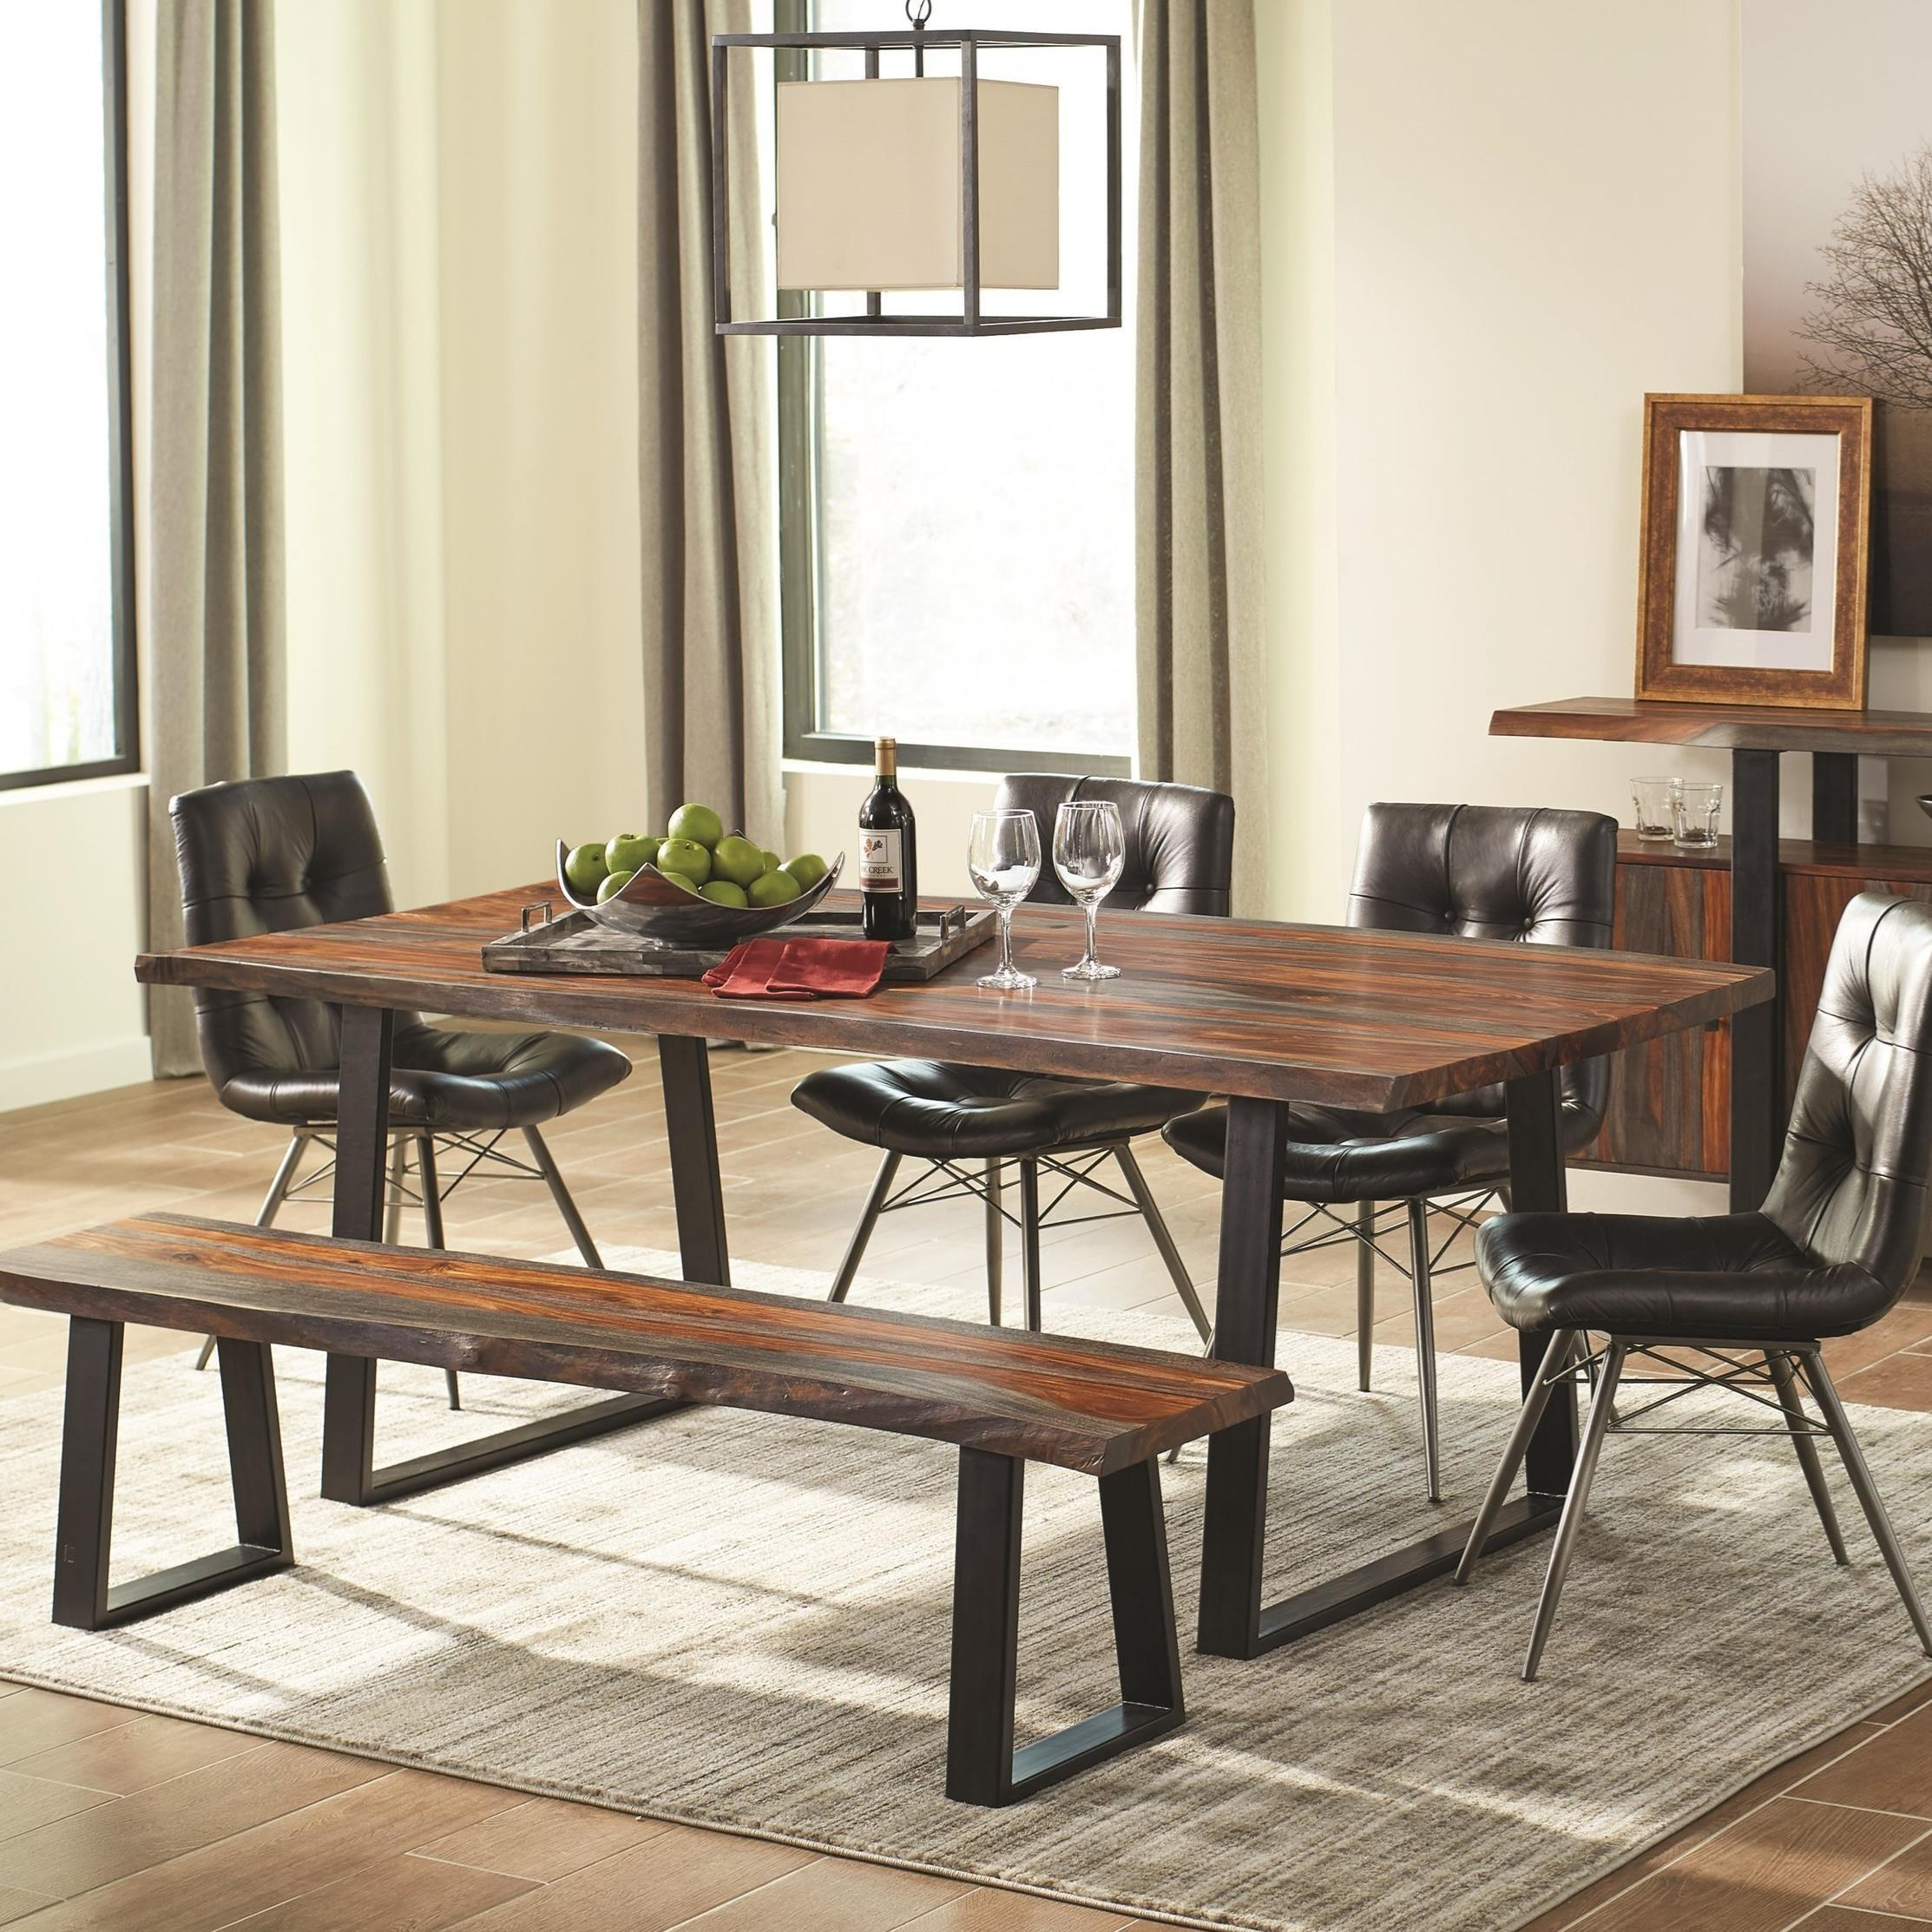 City Furniture Dining Room: Scott Living Jamestown 107511 Rustic Live Edge Dining